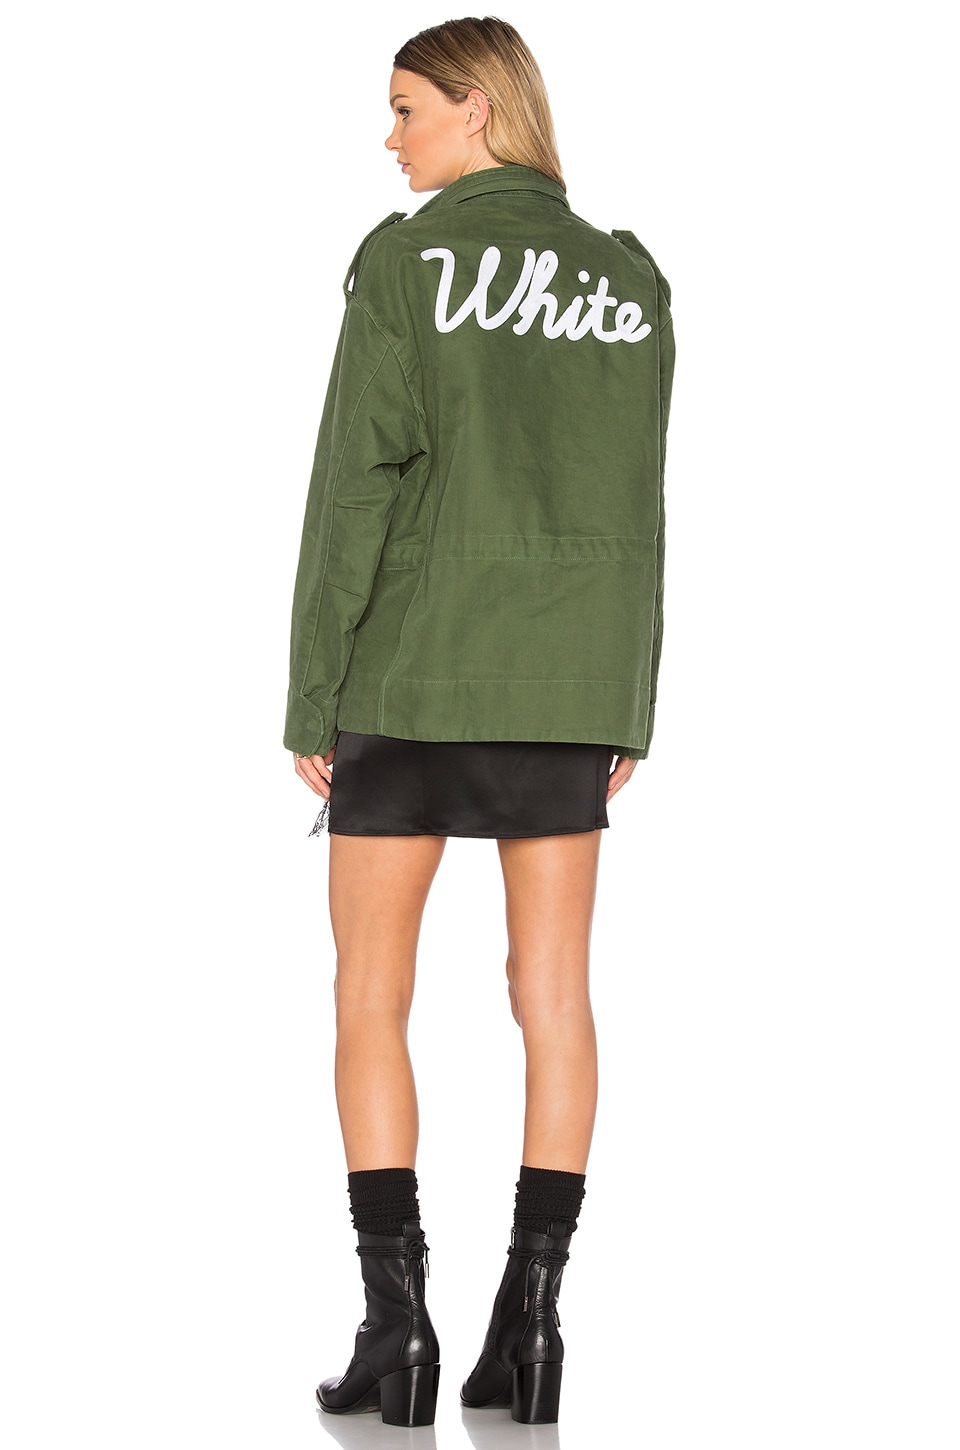 OFF-WHITE Vintage White M65 Jacket in Military Green